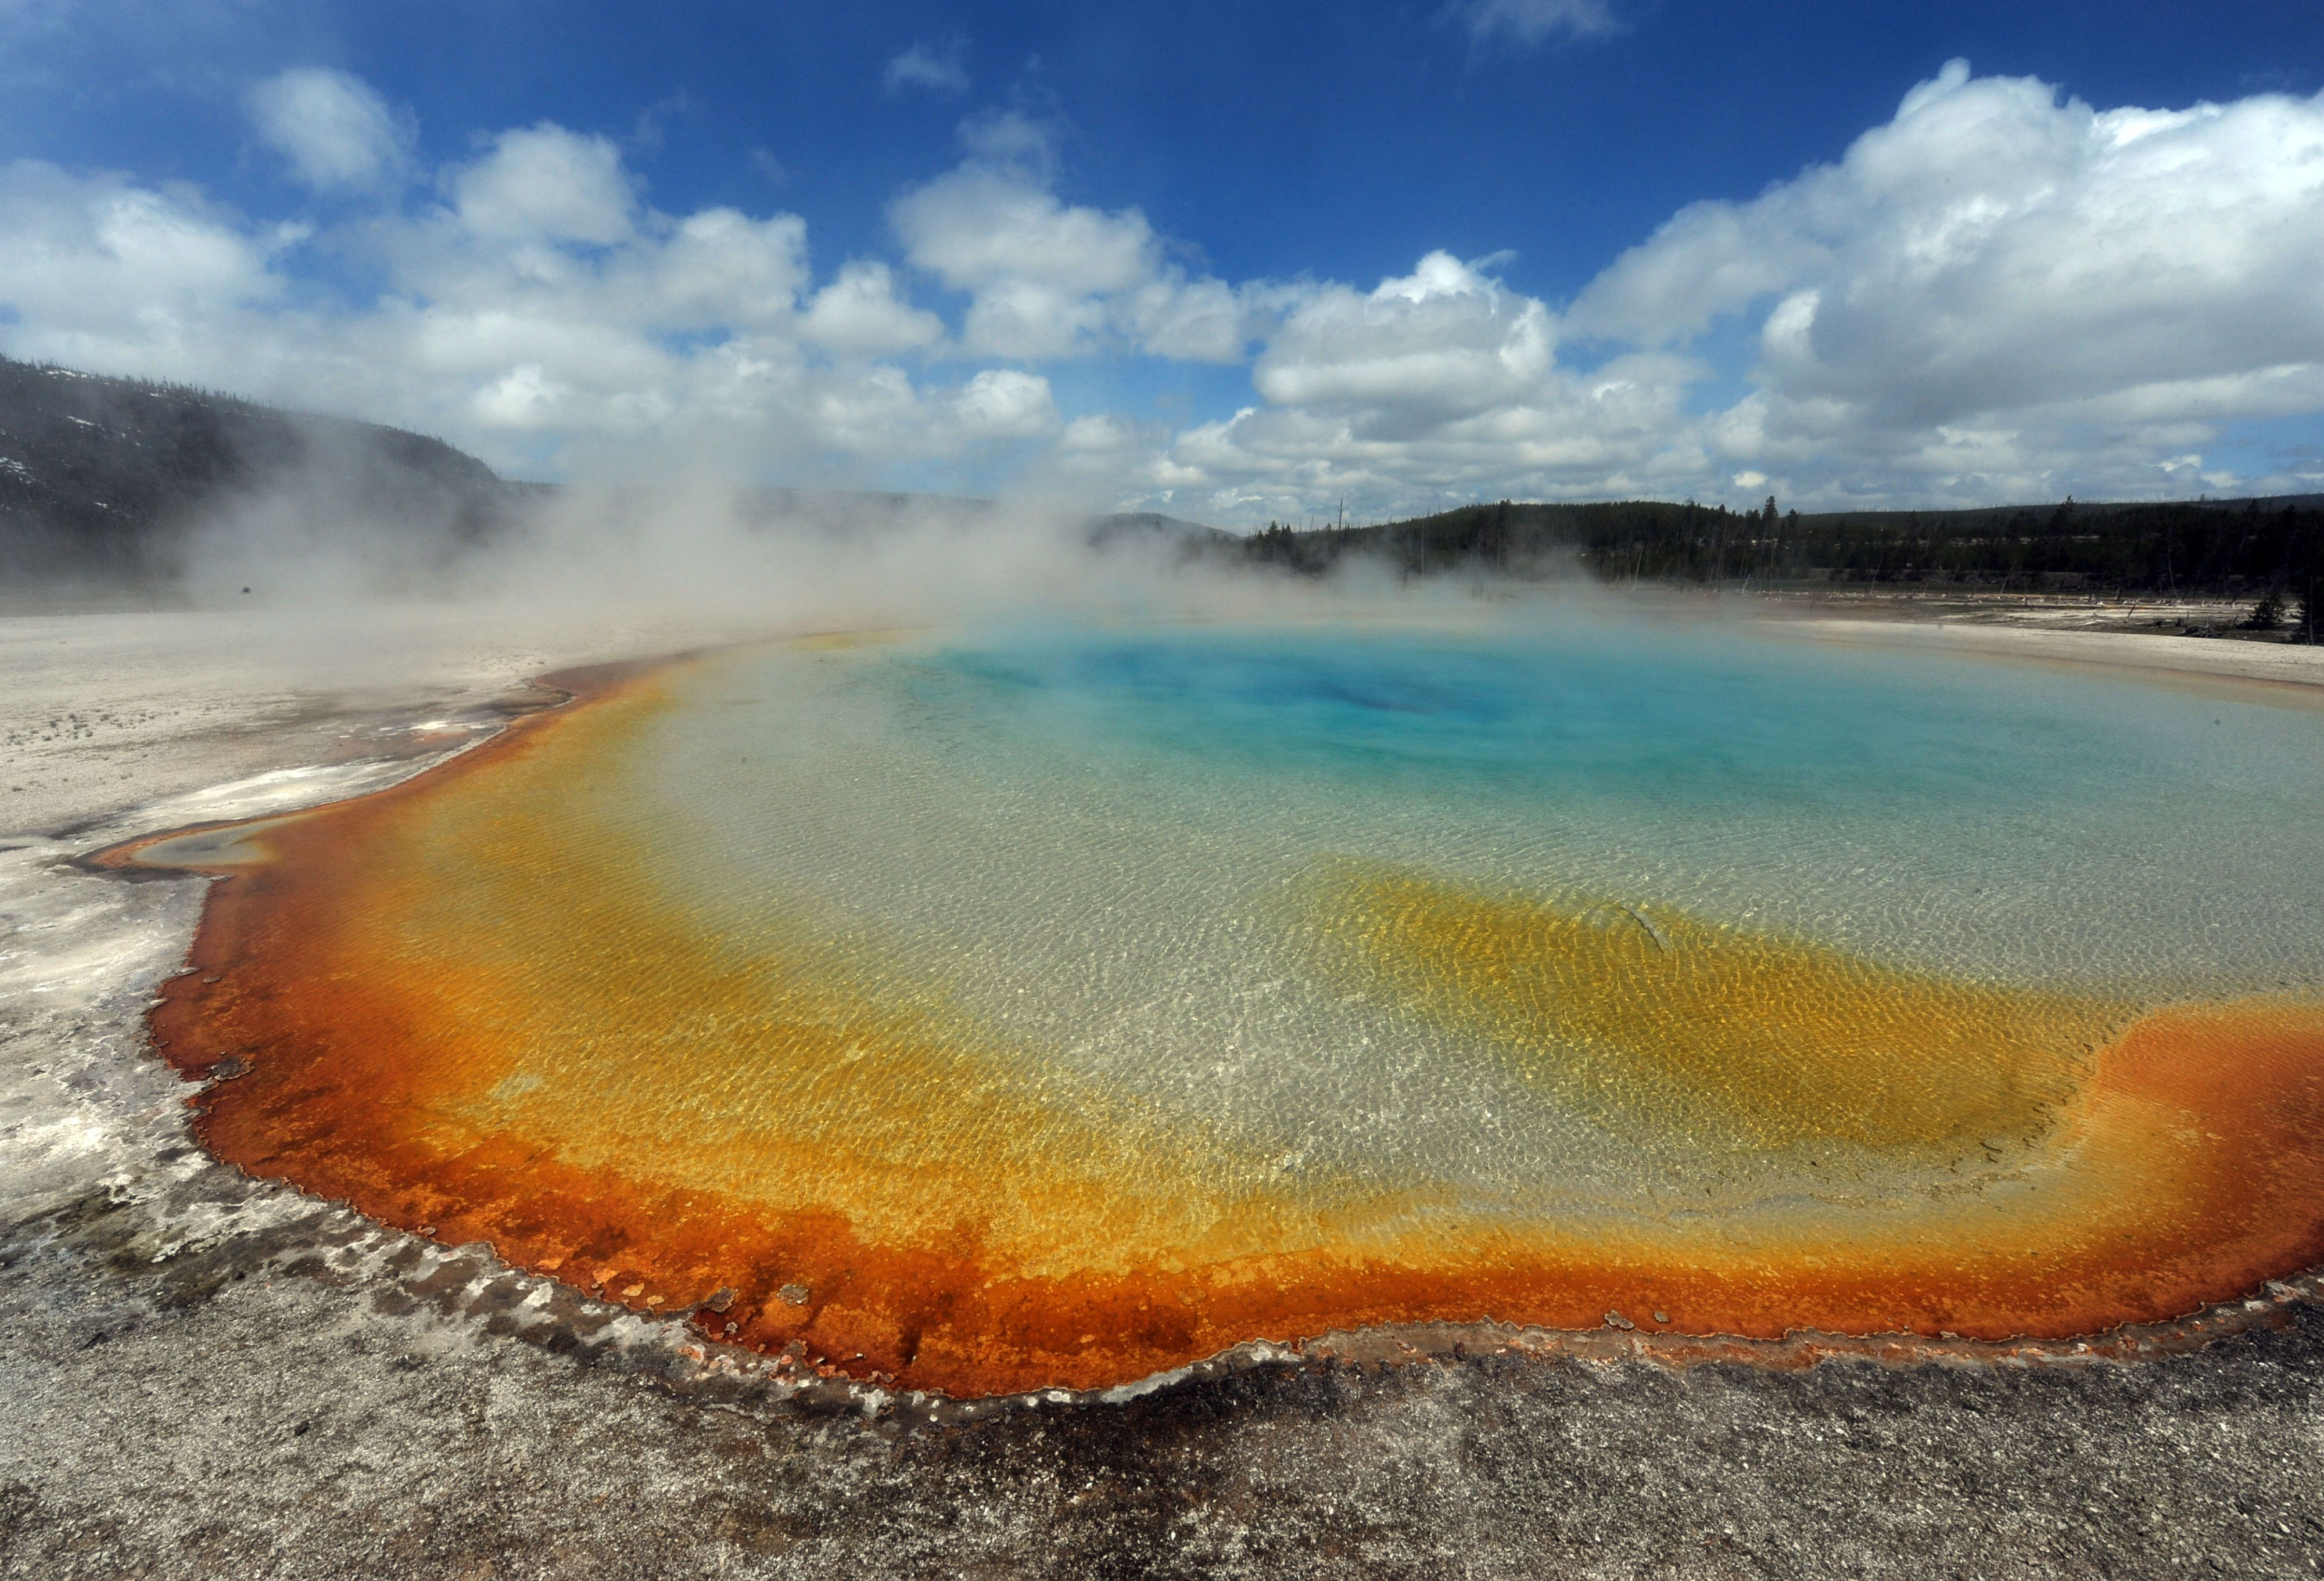 NASA to Stop a Doomsday Supervolcano by Stealing its Heat